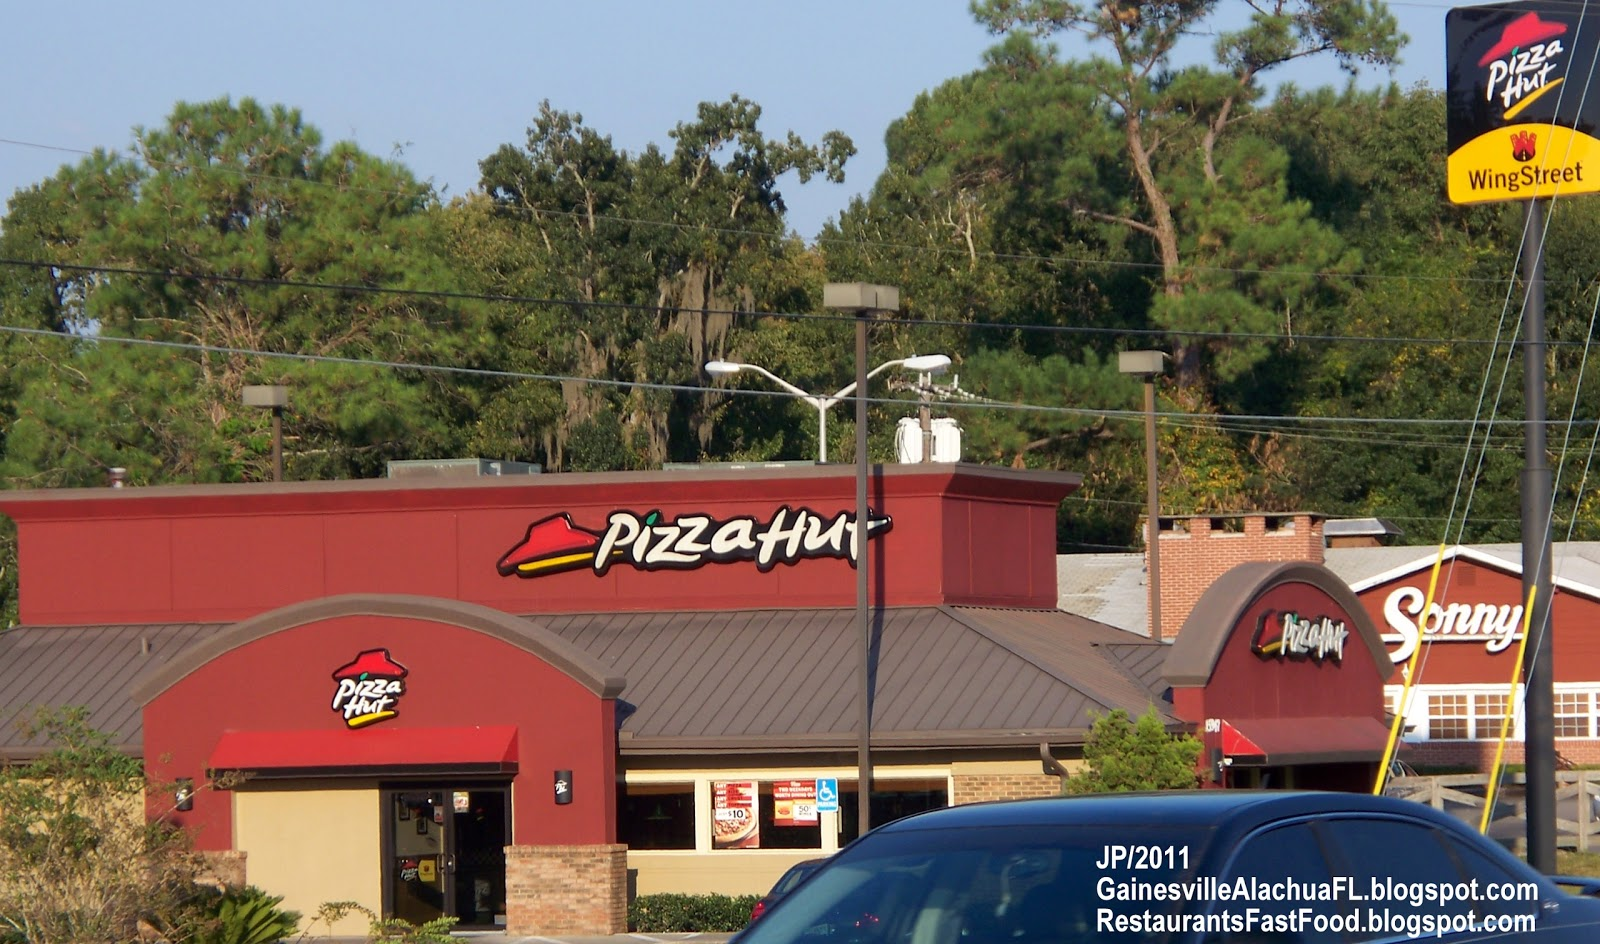 Pizza Hut customer service phone numbers and support